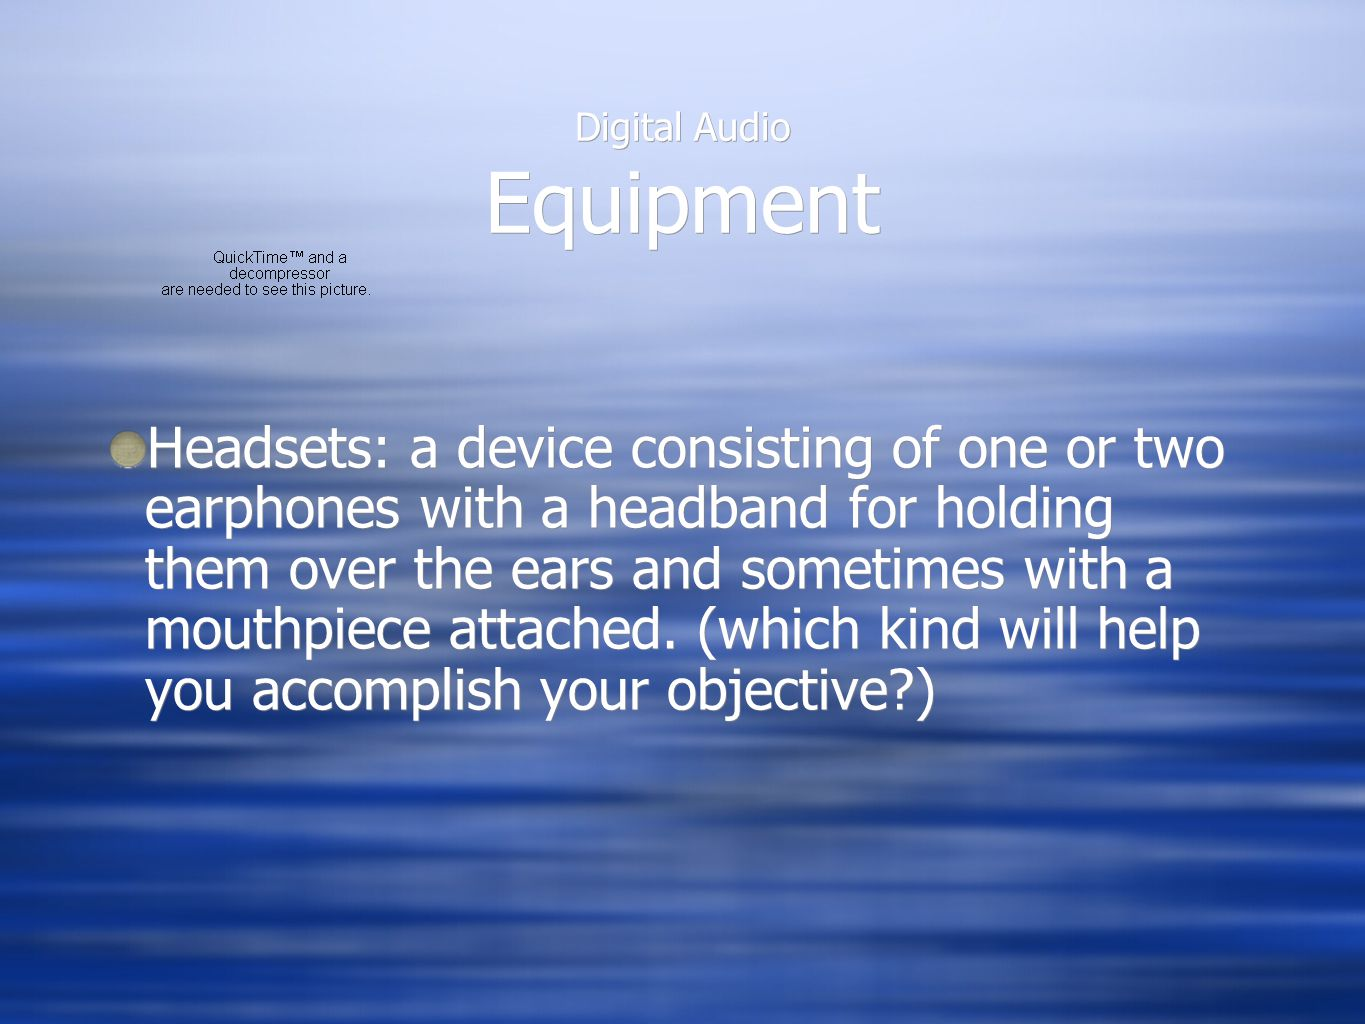 Digital Audio Equipment